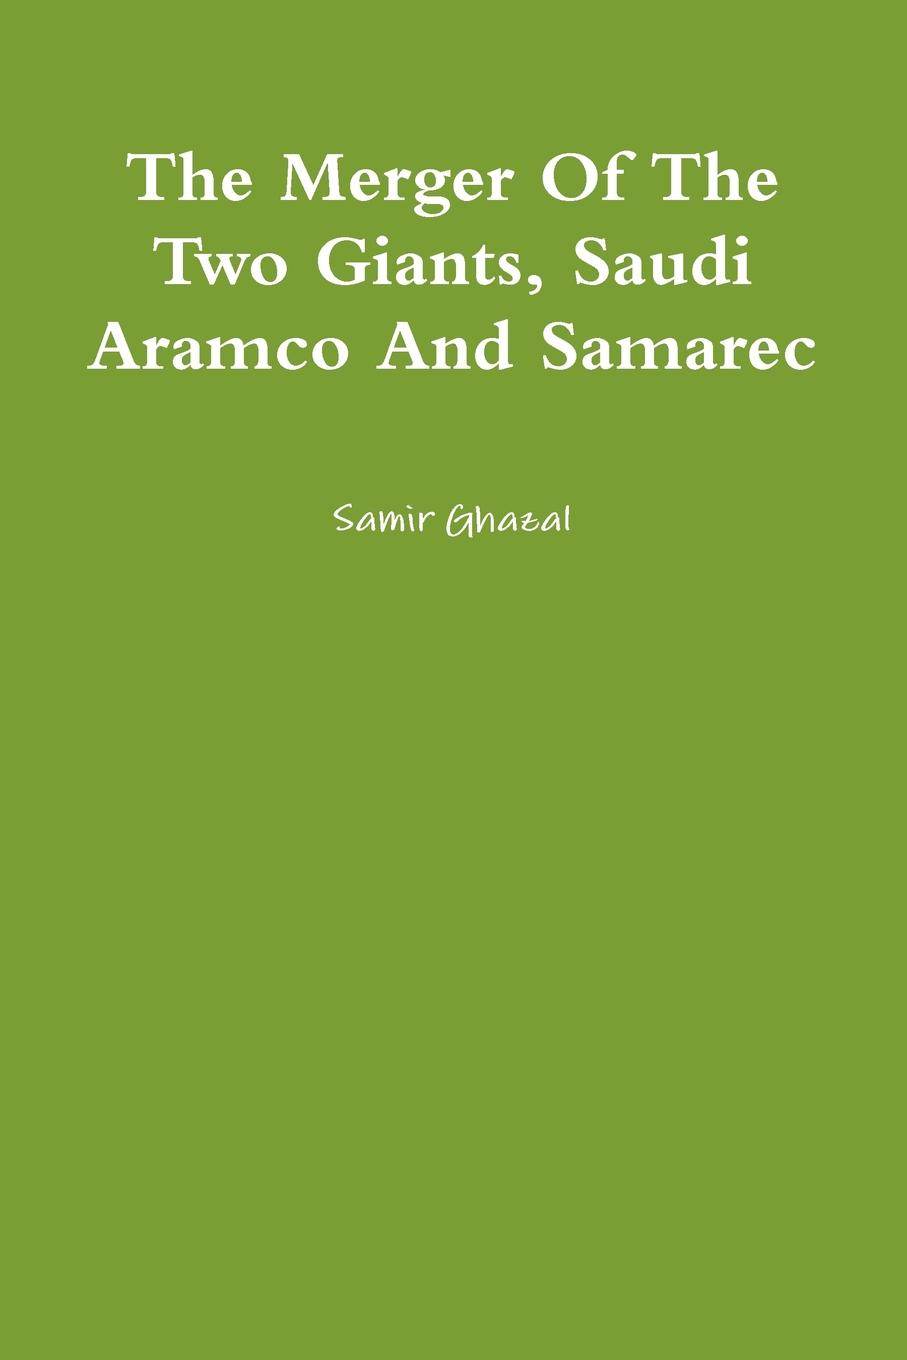 Samir Ghazal The Merger of the Two Giants, Saudi Aramco and Samarec on the shoulders of giants